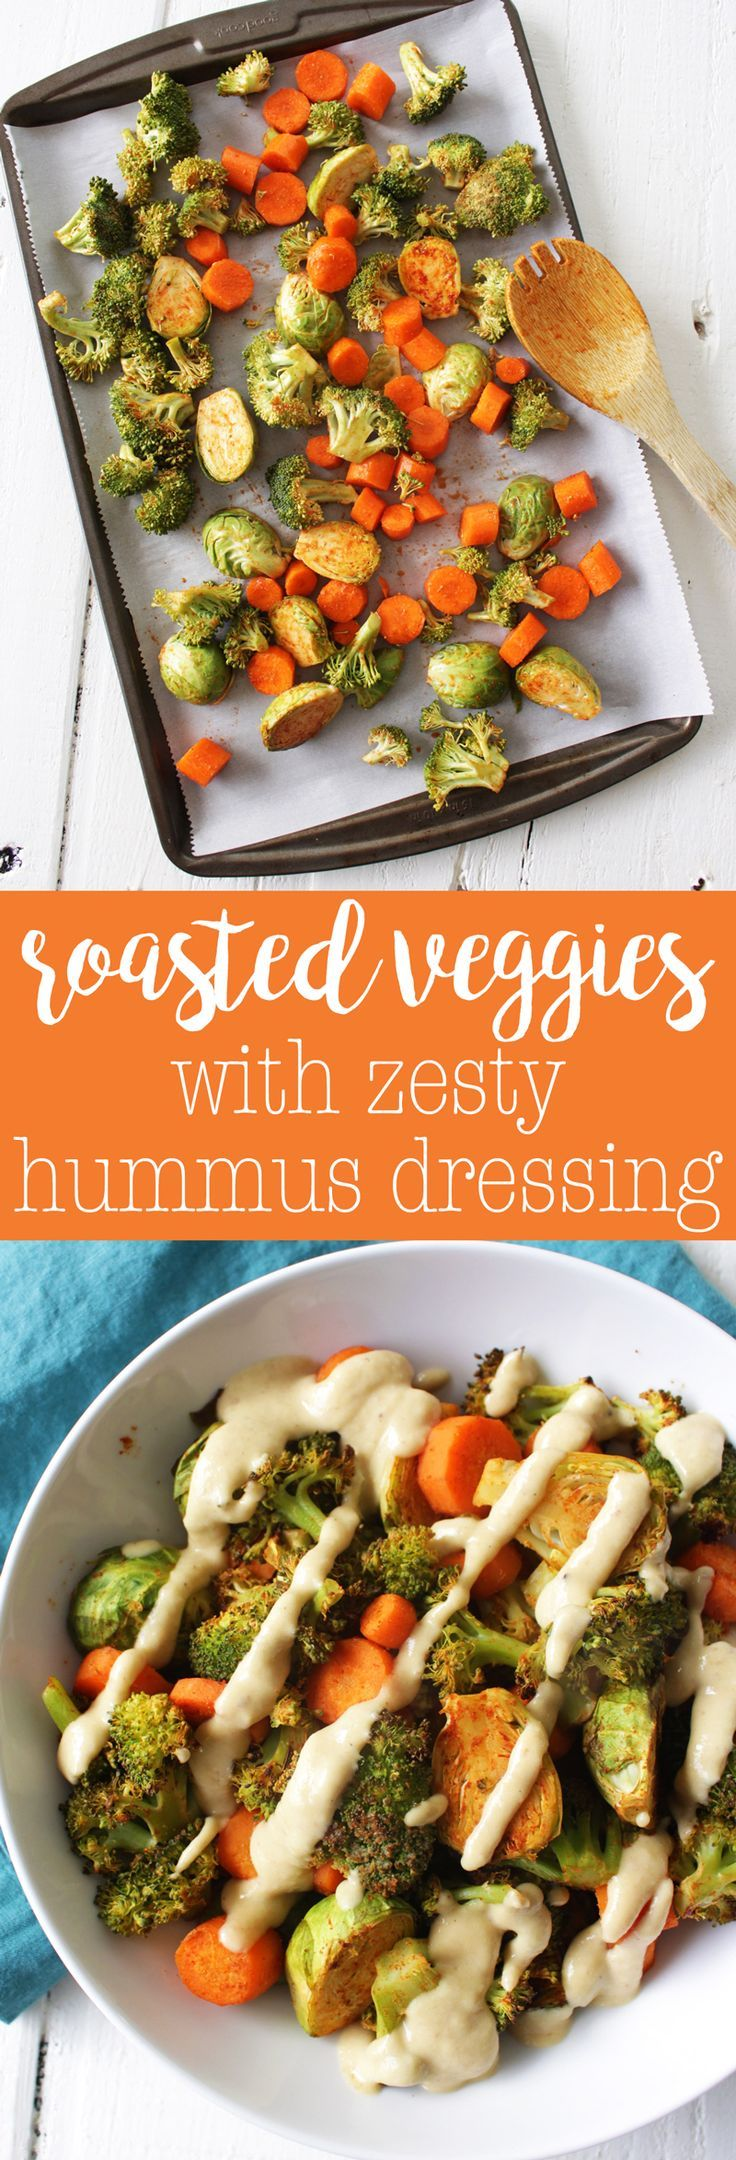 Roasted Veggies with Zesty Hummus Dressing - easy vegan side dish or lunch! Perfect for meal prepping and SO TASTY.   HCLF Vegan   Oil-free via @thecrunchychron